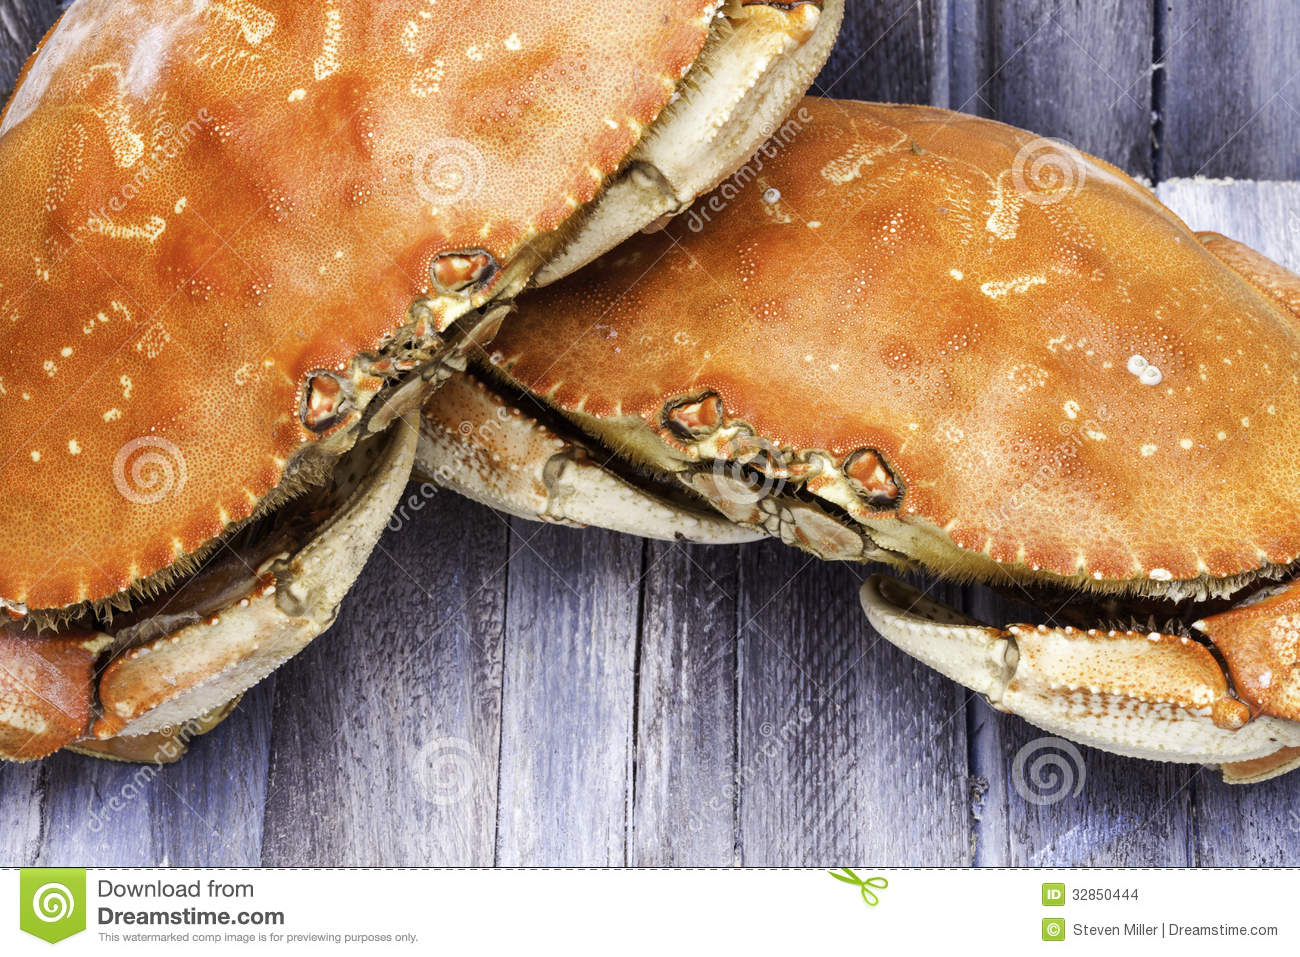 how to cook pre cooked dungeness crab